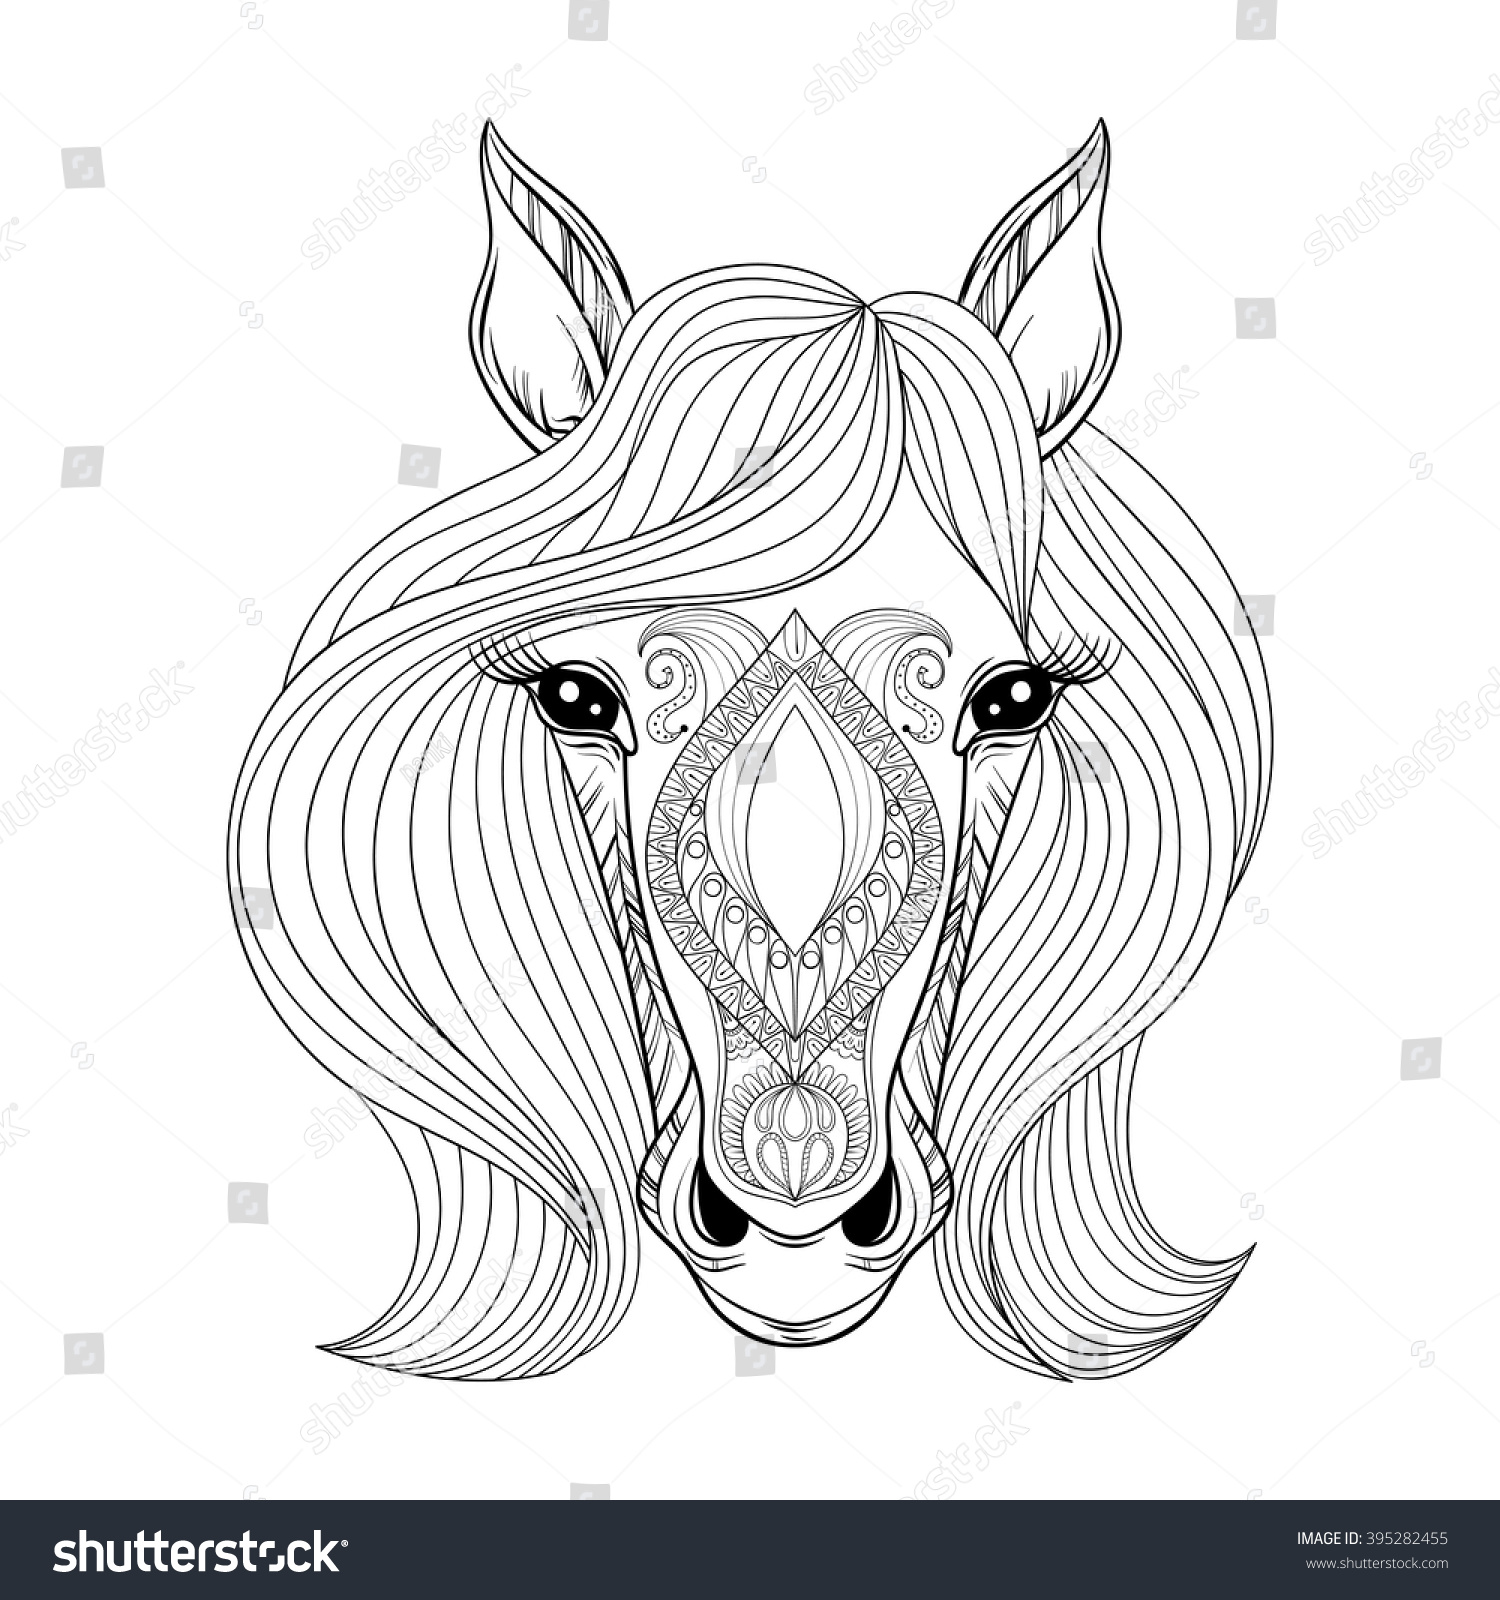 Unicorn face coloring page - Coloring Page With Zentangle Horse Face Hand Drawn Patterned Horse Head With